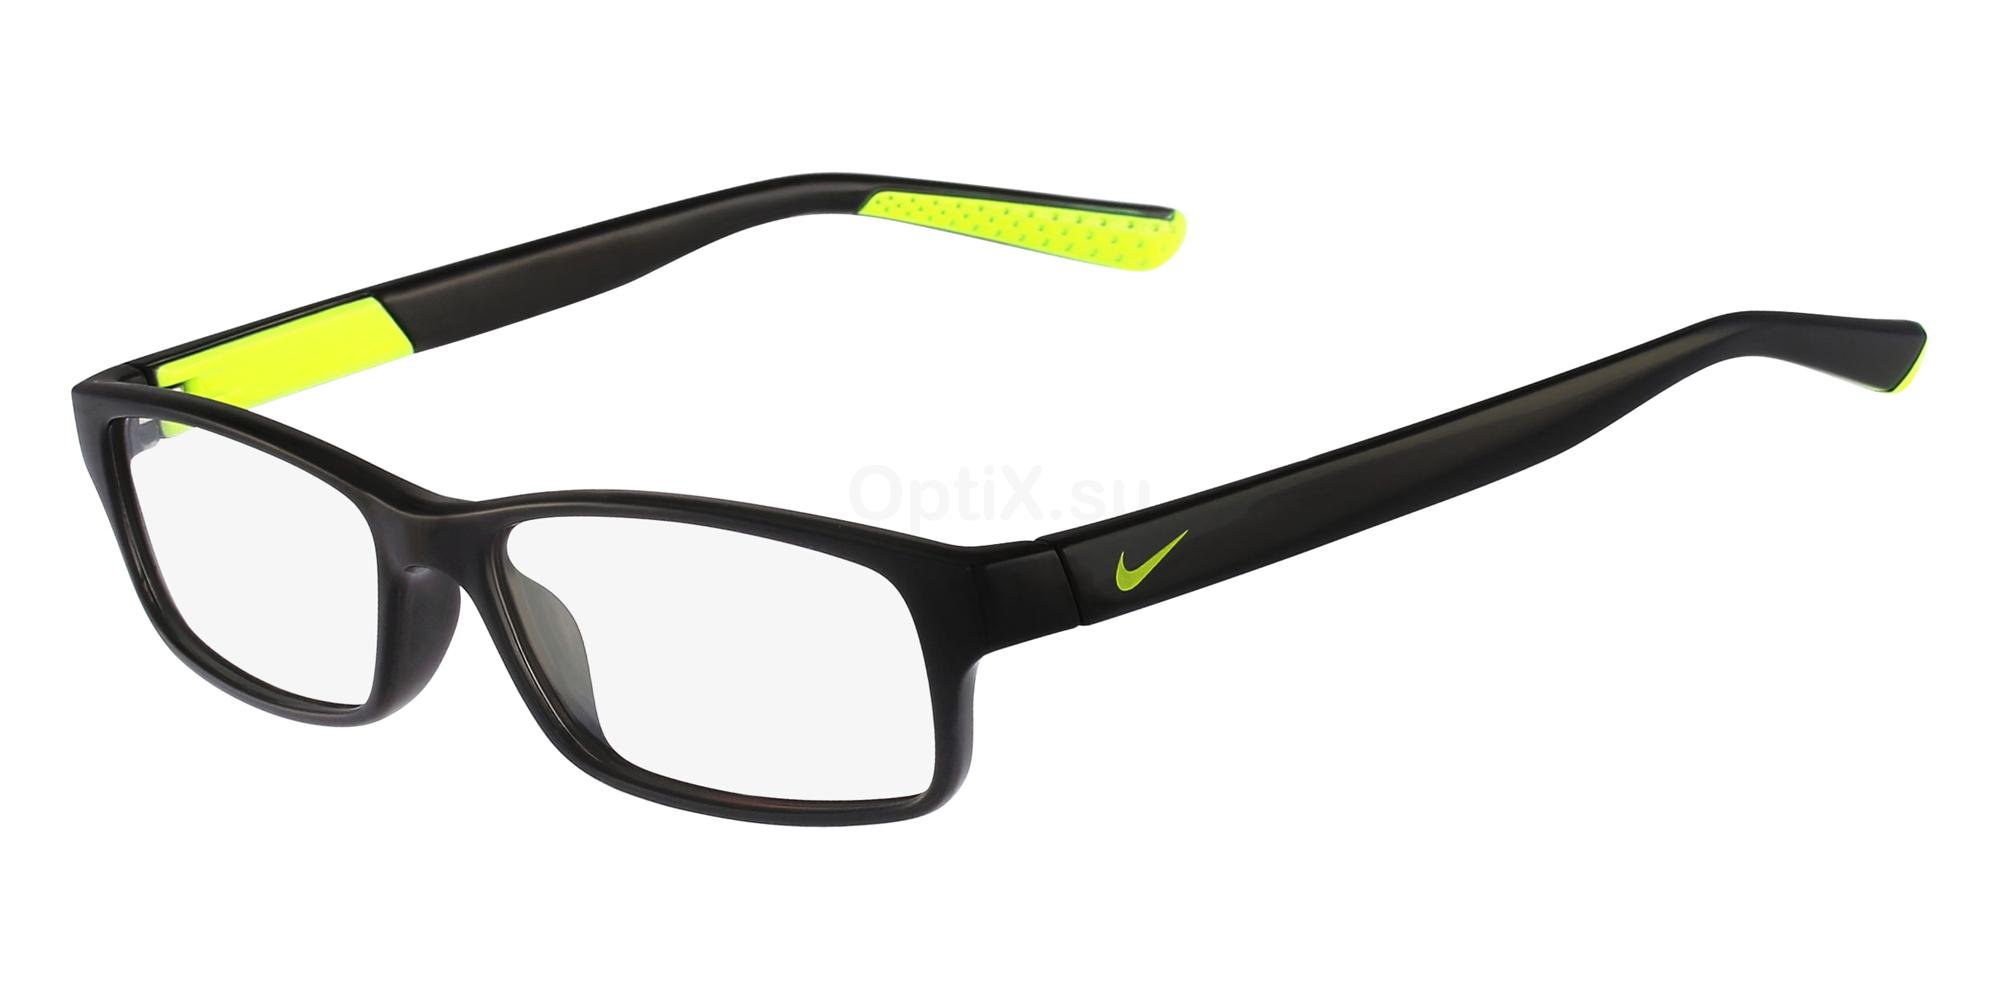 015 5534 Glasses, Nike TEENS